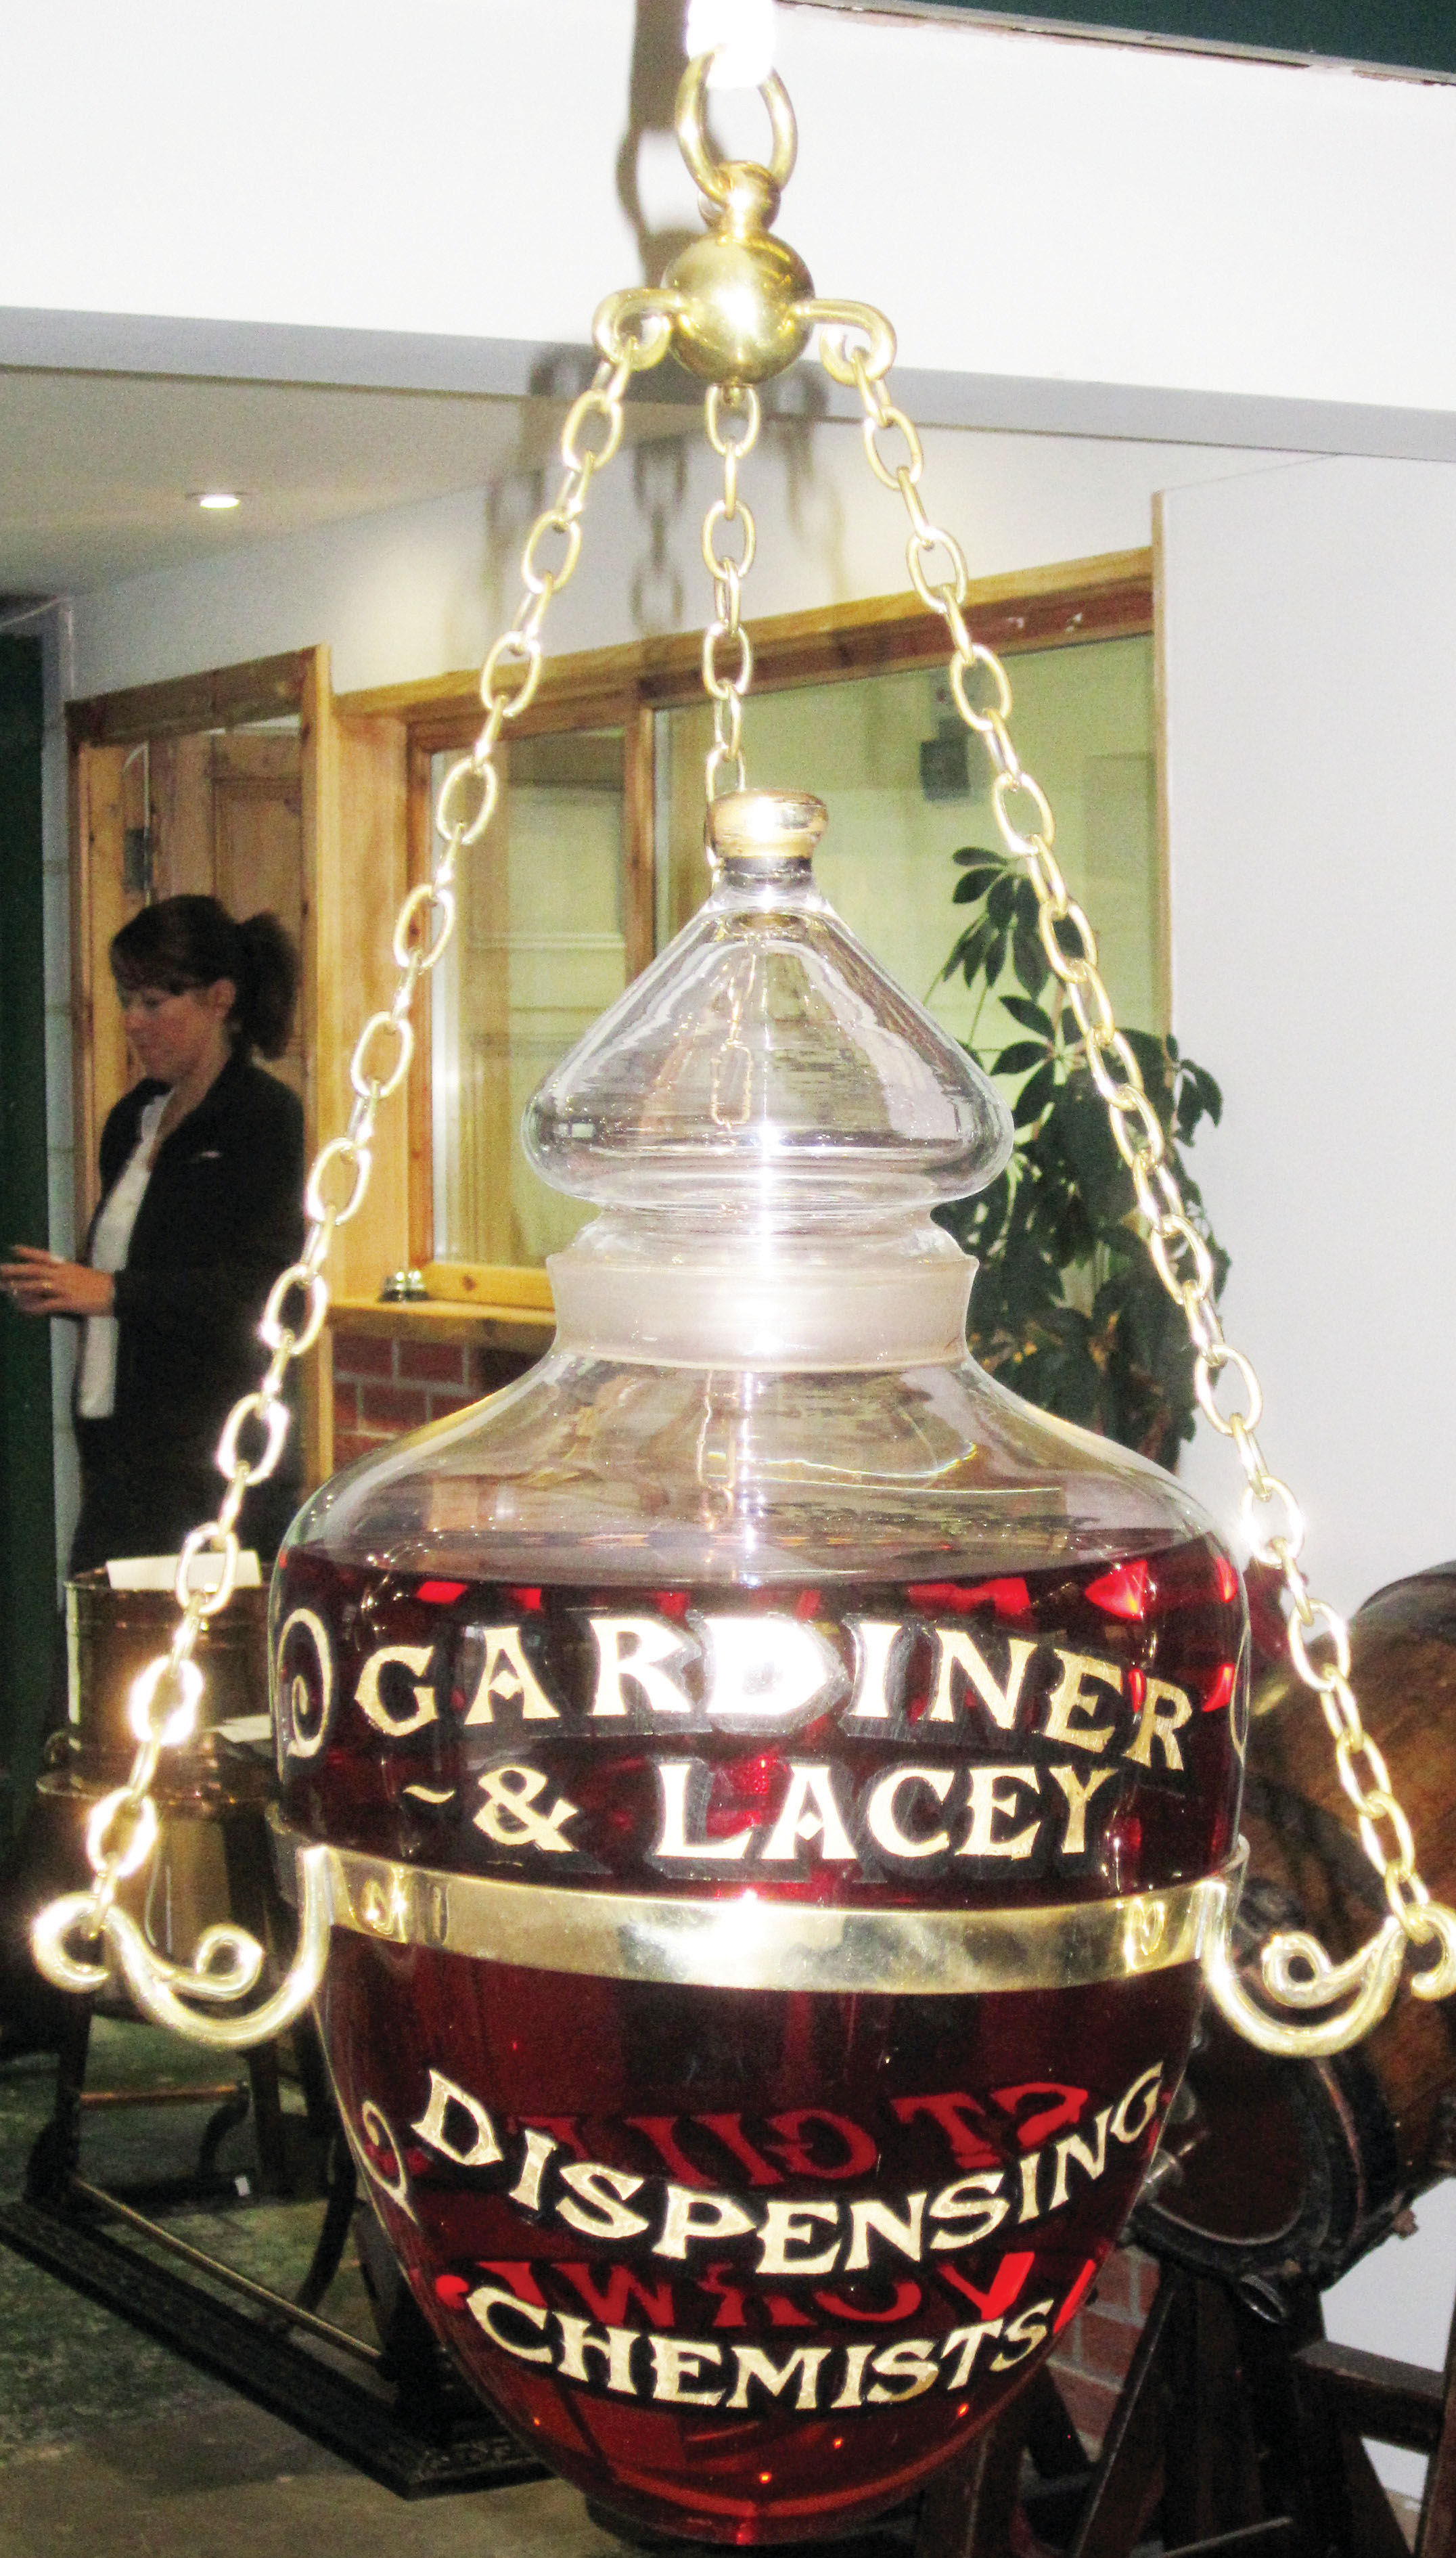 Lot 89 - NORWICH HANGING CARBOY. 16.5ins long, clear glass pear shape hanging carboy with stopper 'THE